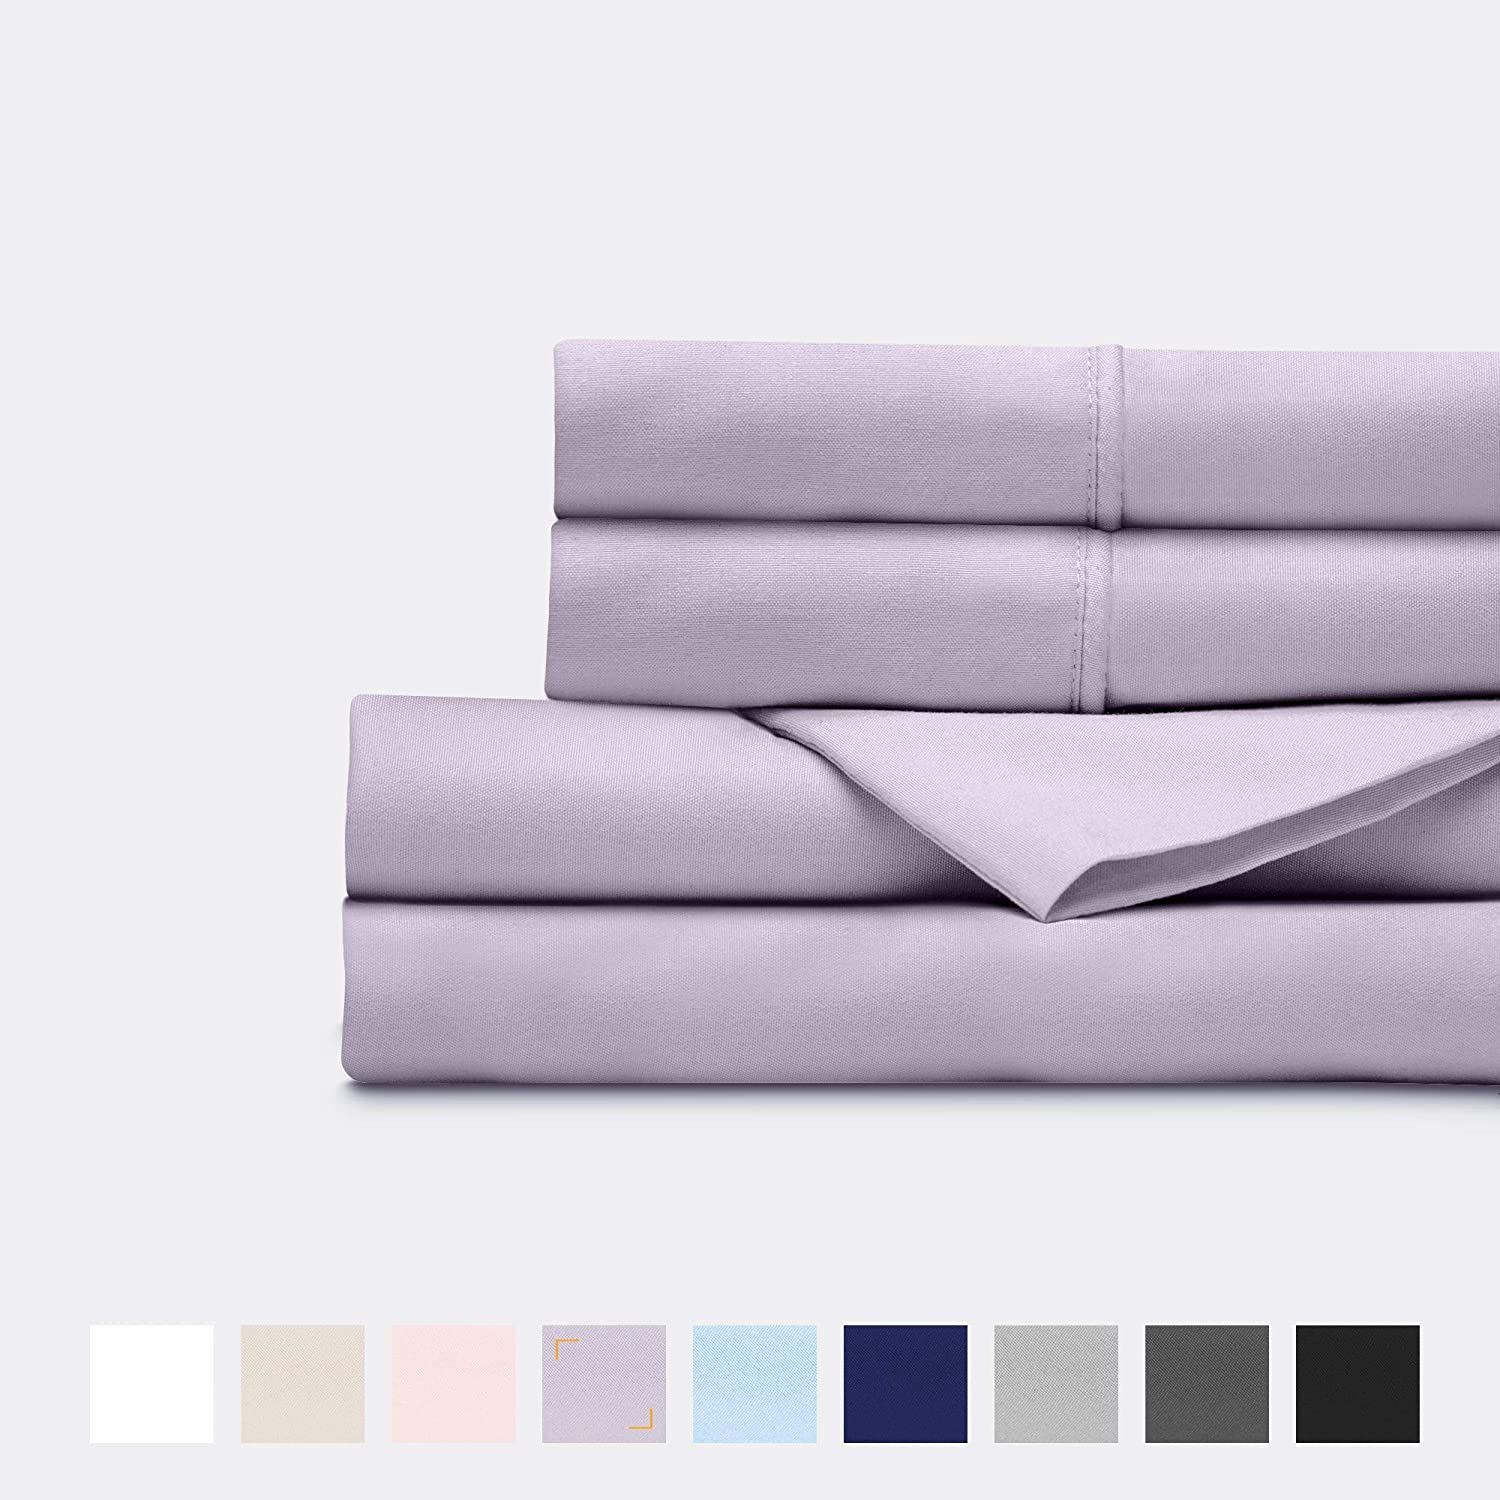 Everspread Bed Sheets (4 Piece Sheet Set), Queen Size, Lavender. Ultra-Soft & Breathable. Luxury Bedding. Deep Pockets - Fits Mattresses up to 16 inches. Hypoallergenic & Wrinkle Resistant: Home & Kitchen